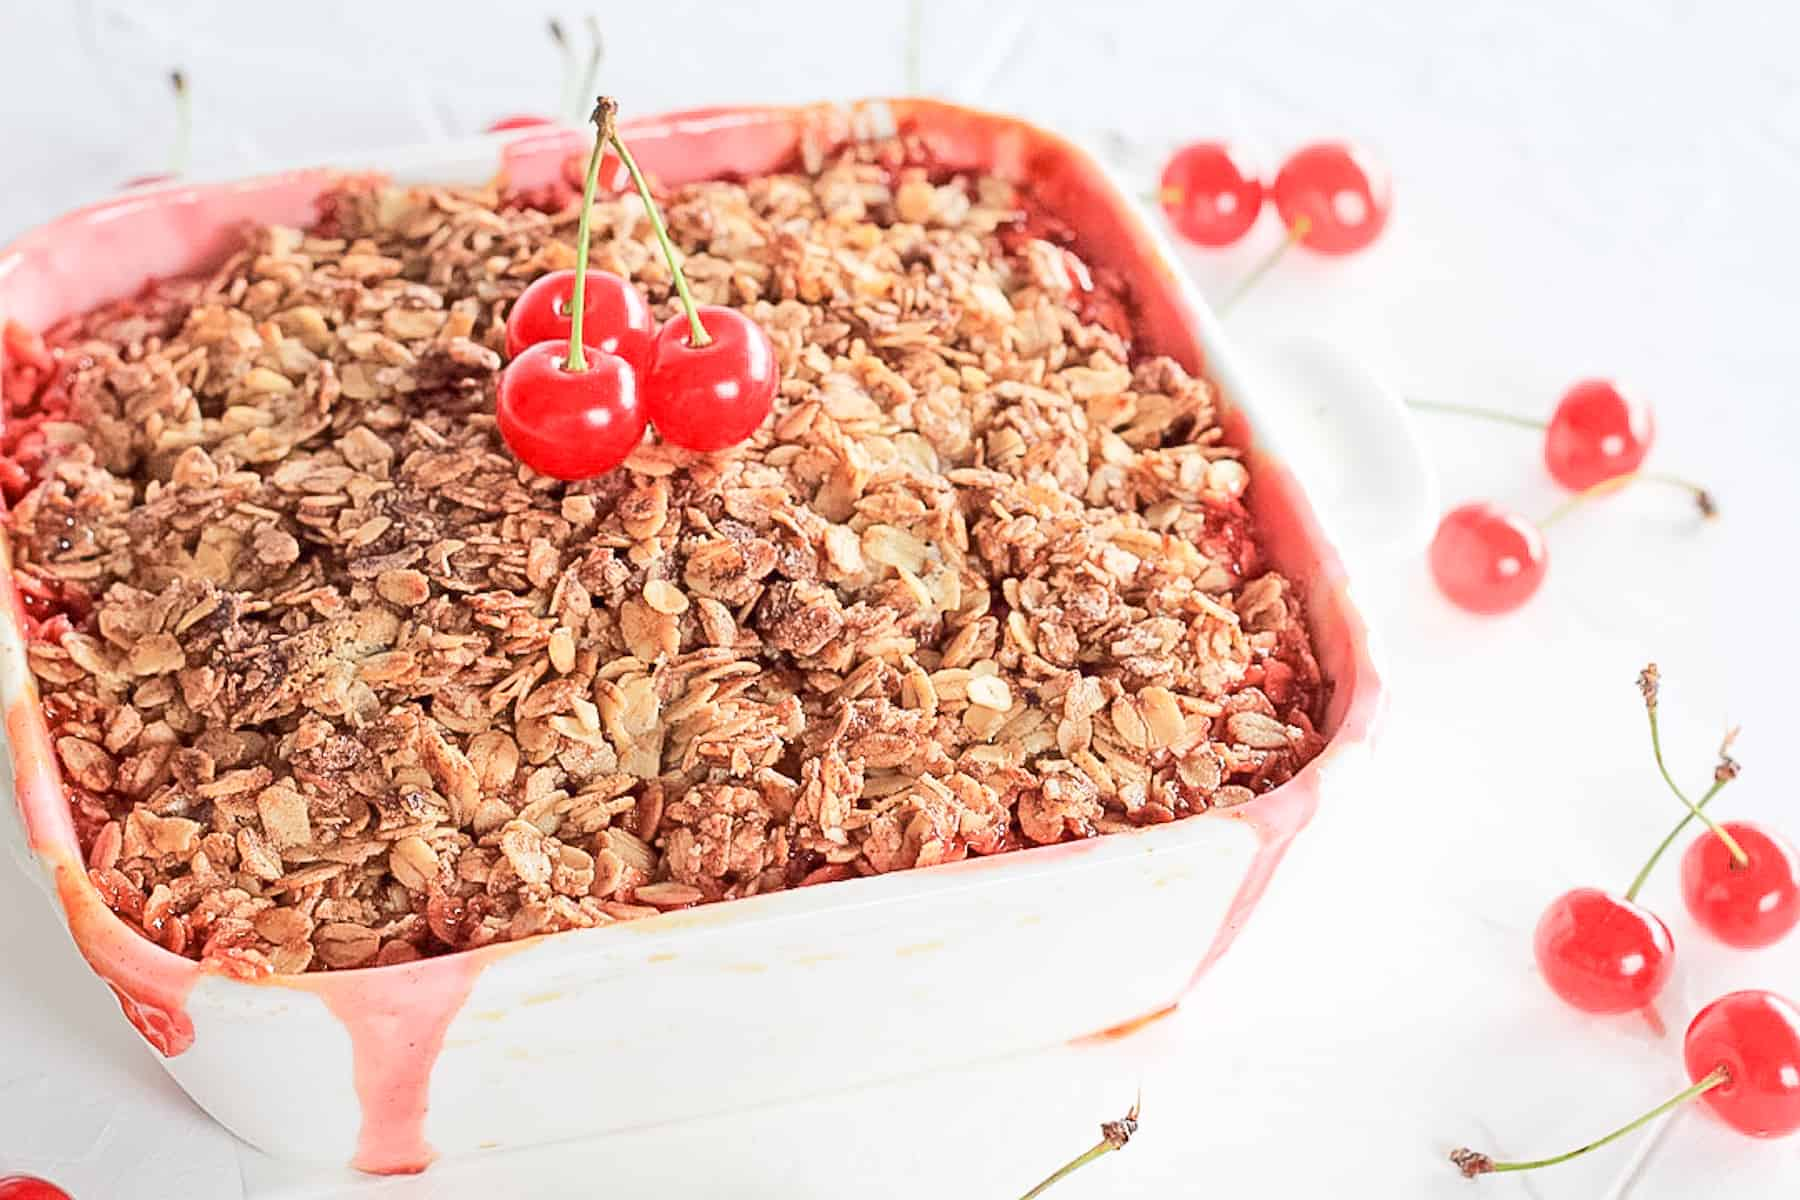 Side view of a cherry cobbler with cherry juice running down the side of the white baking dish.